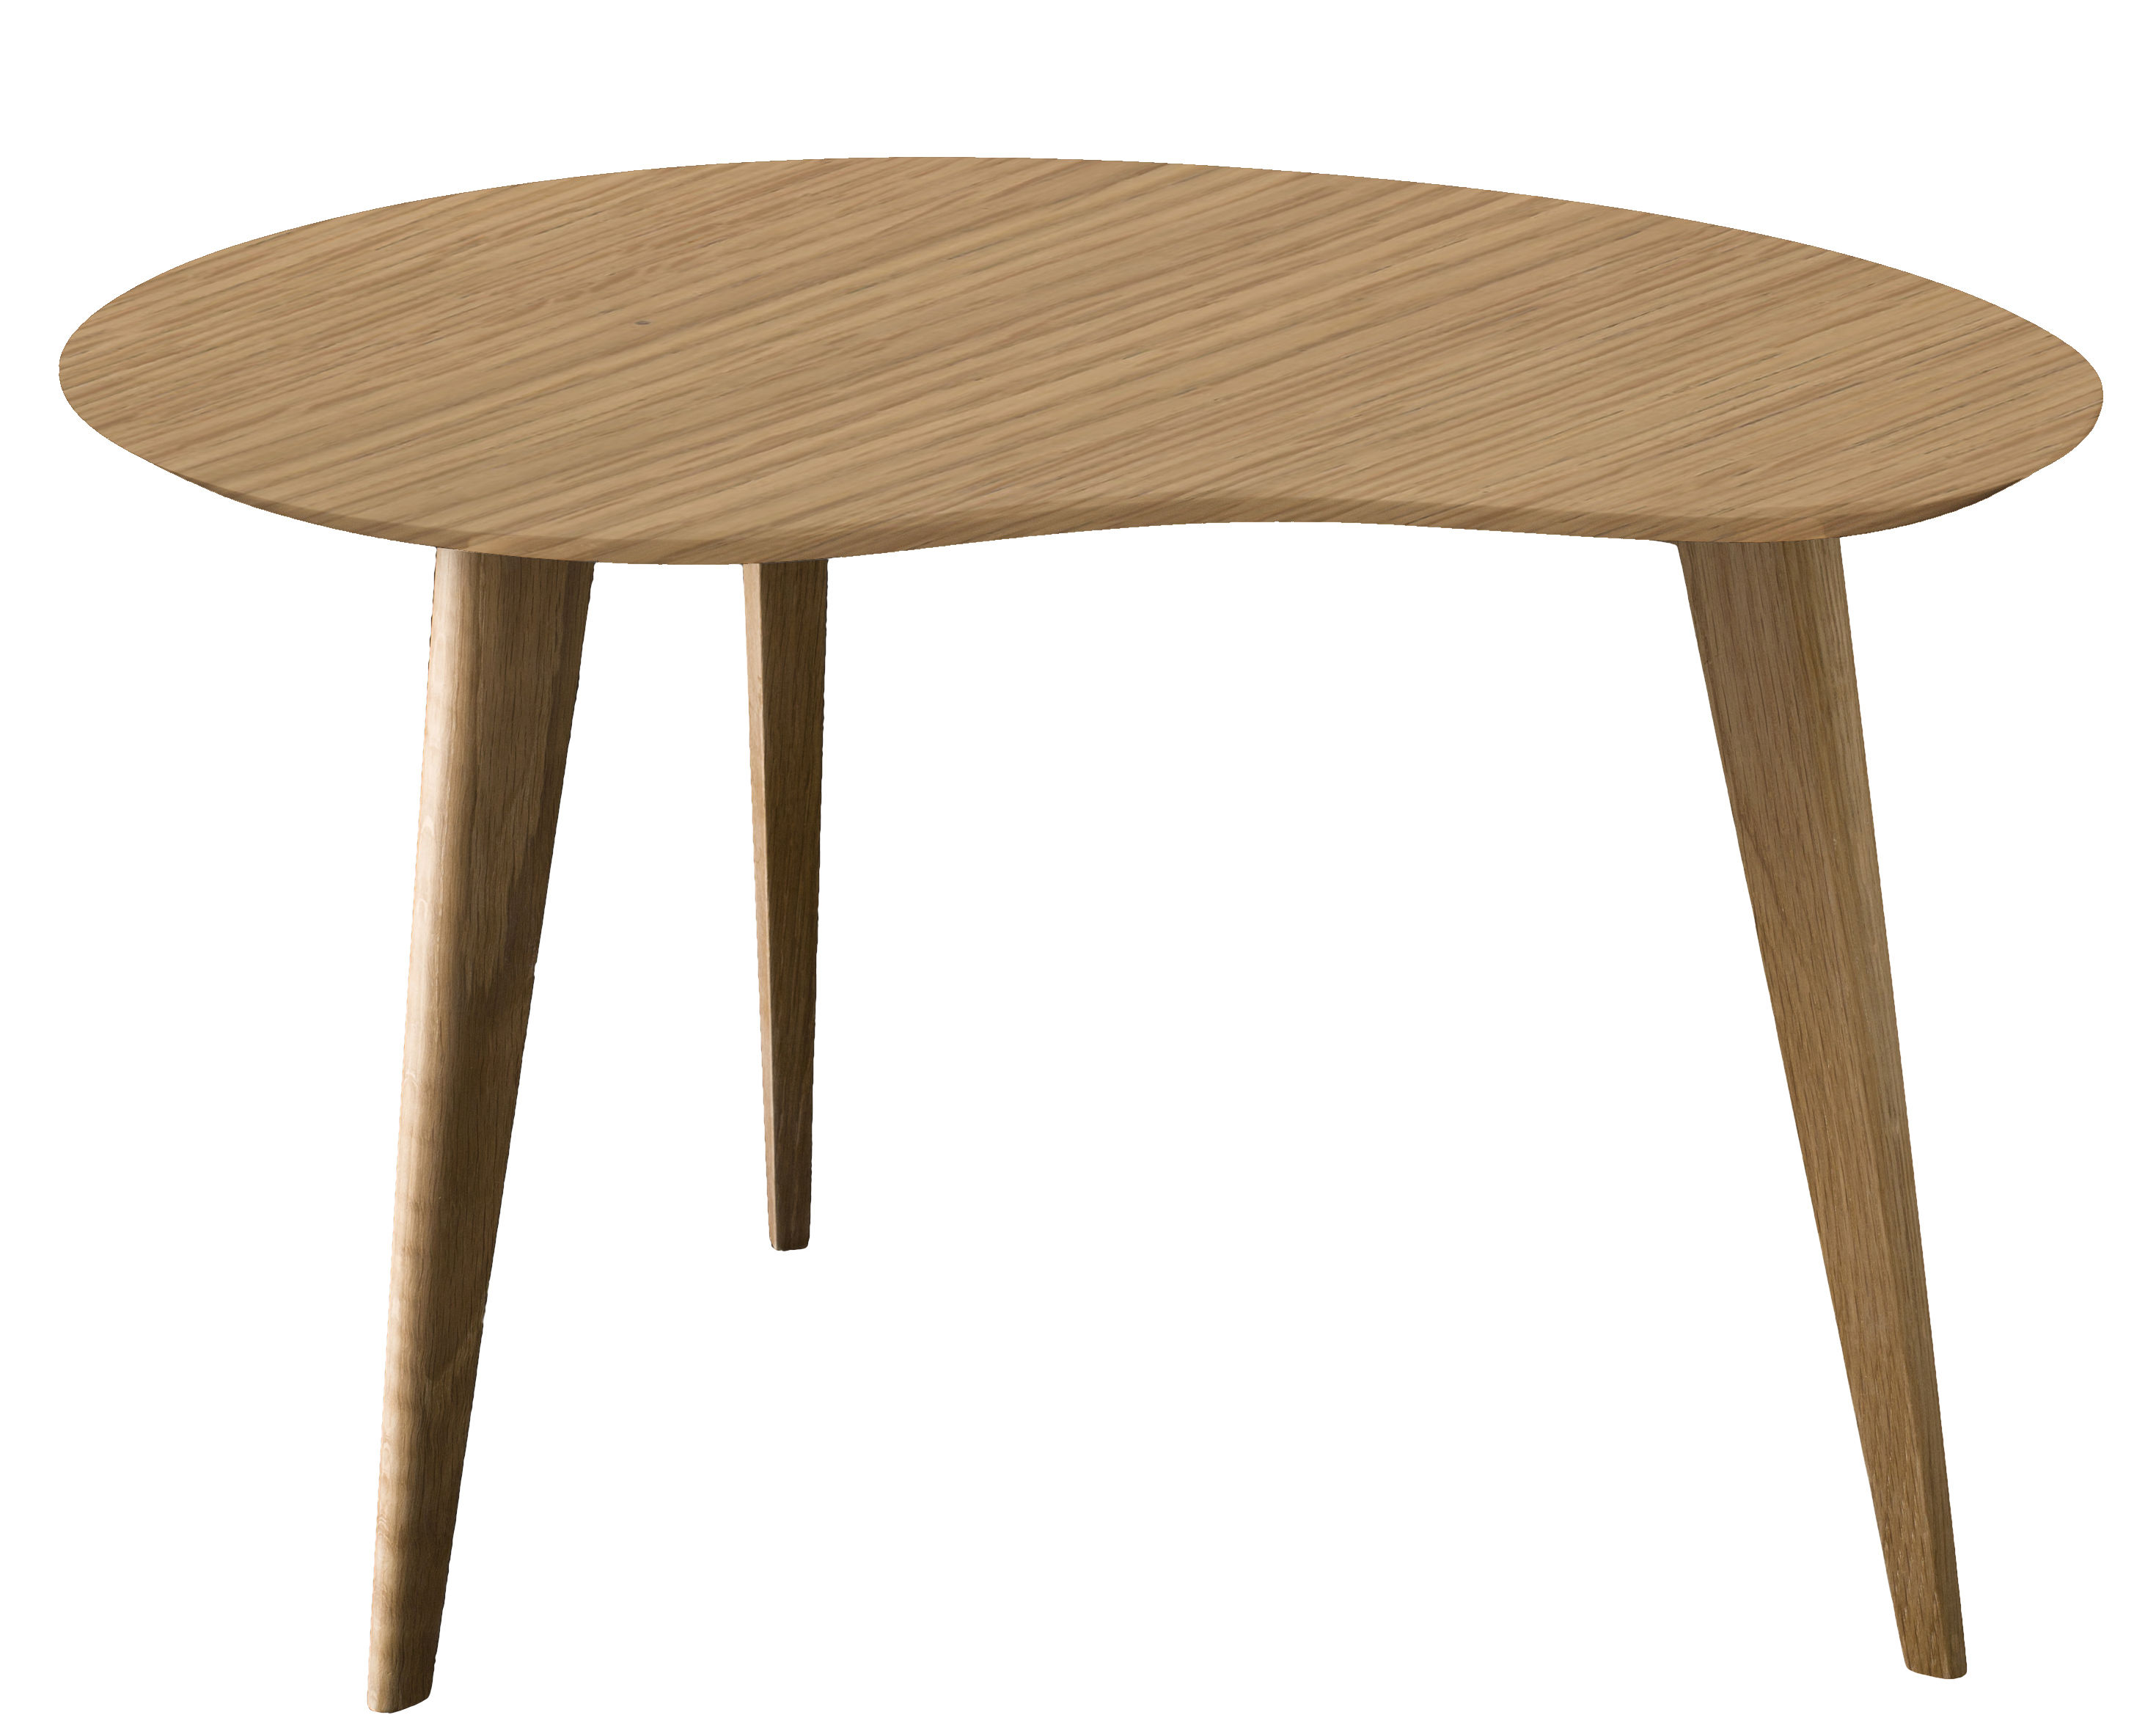 Lalinde coffee table oak wood legs by sentou edition - Table basse vitree ...